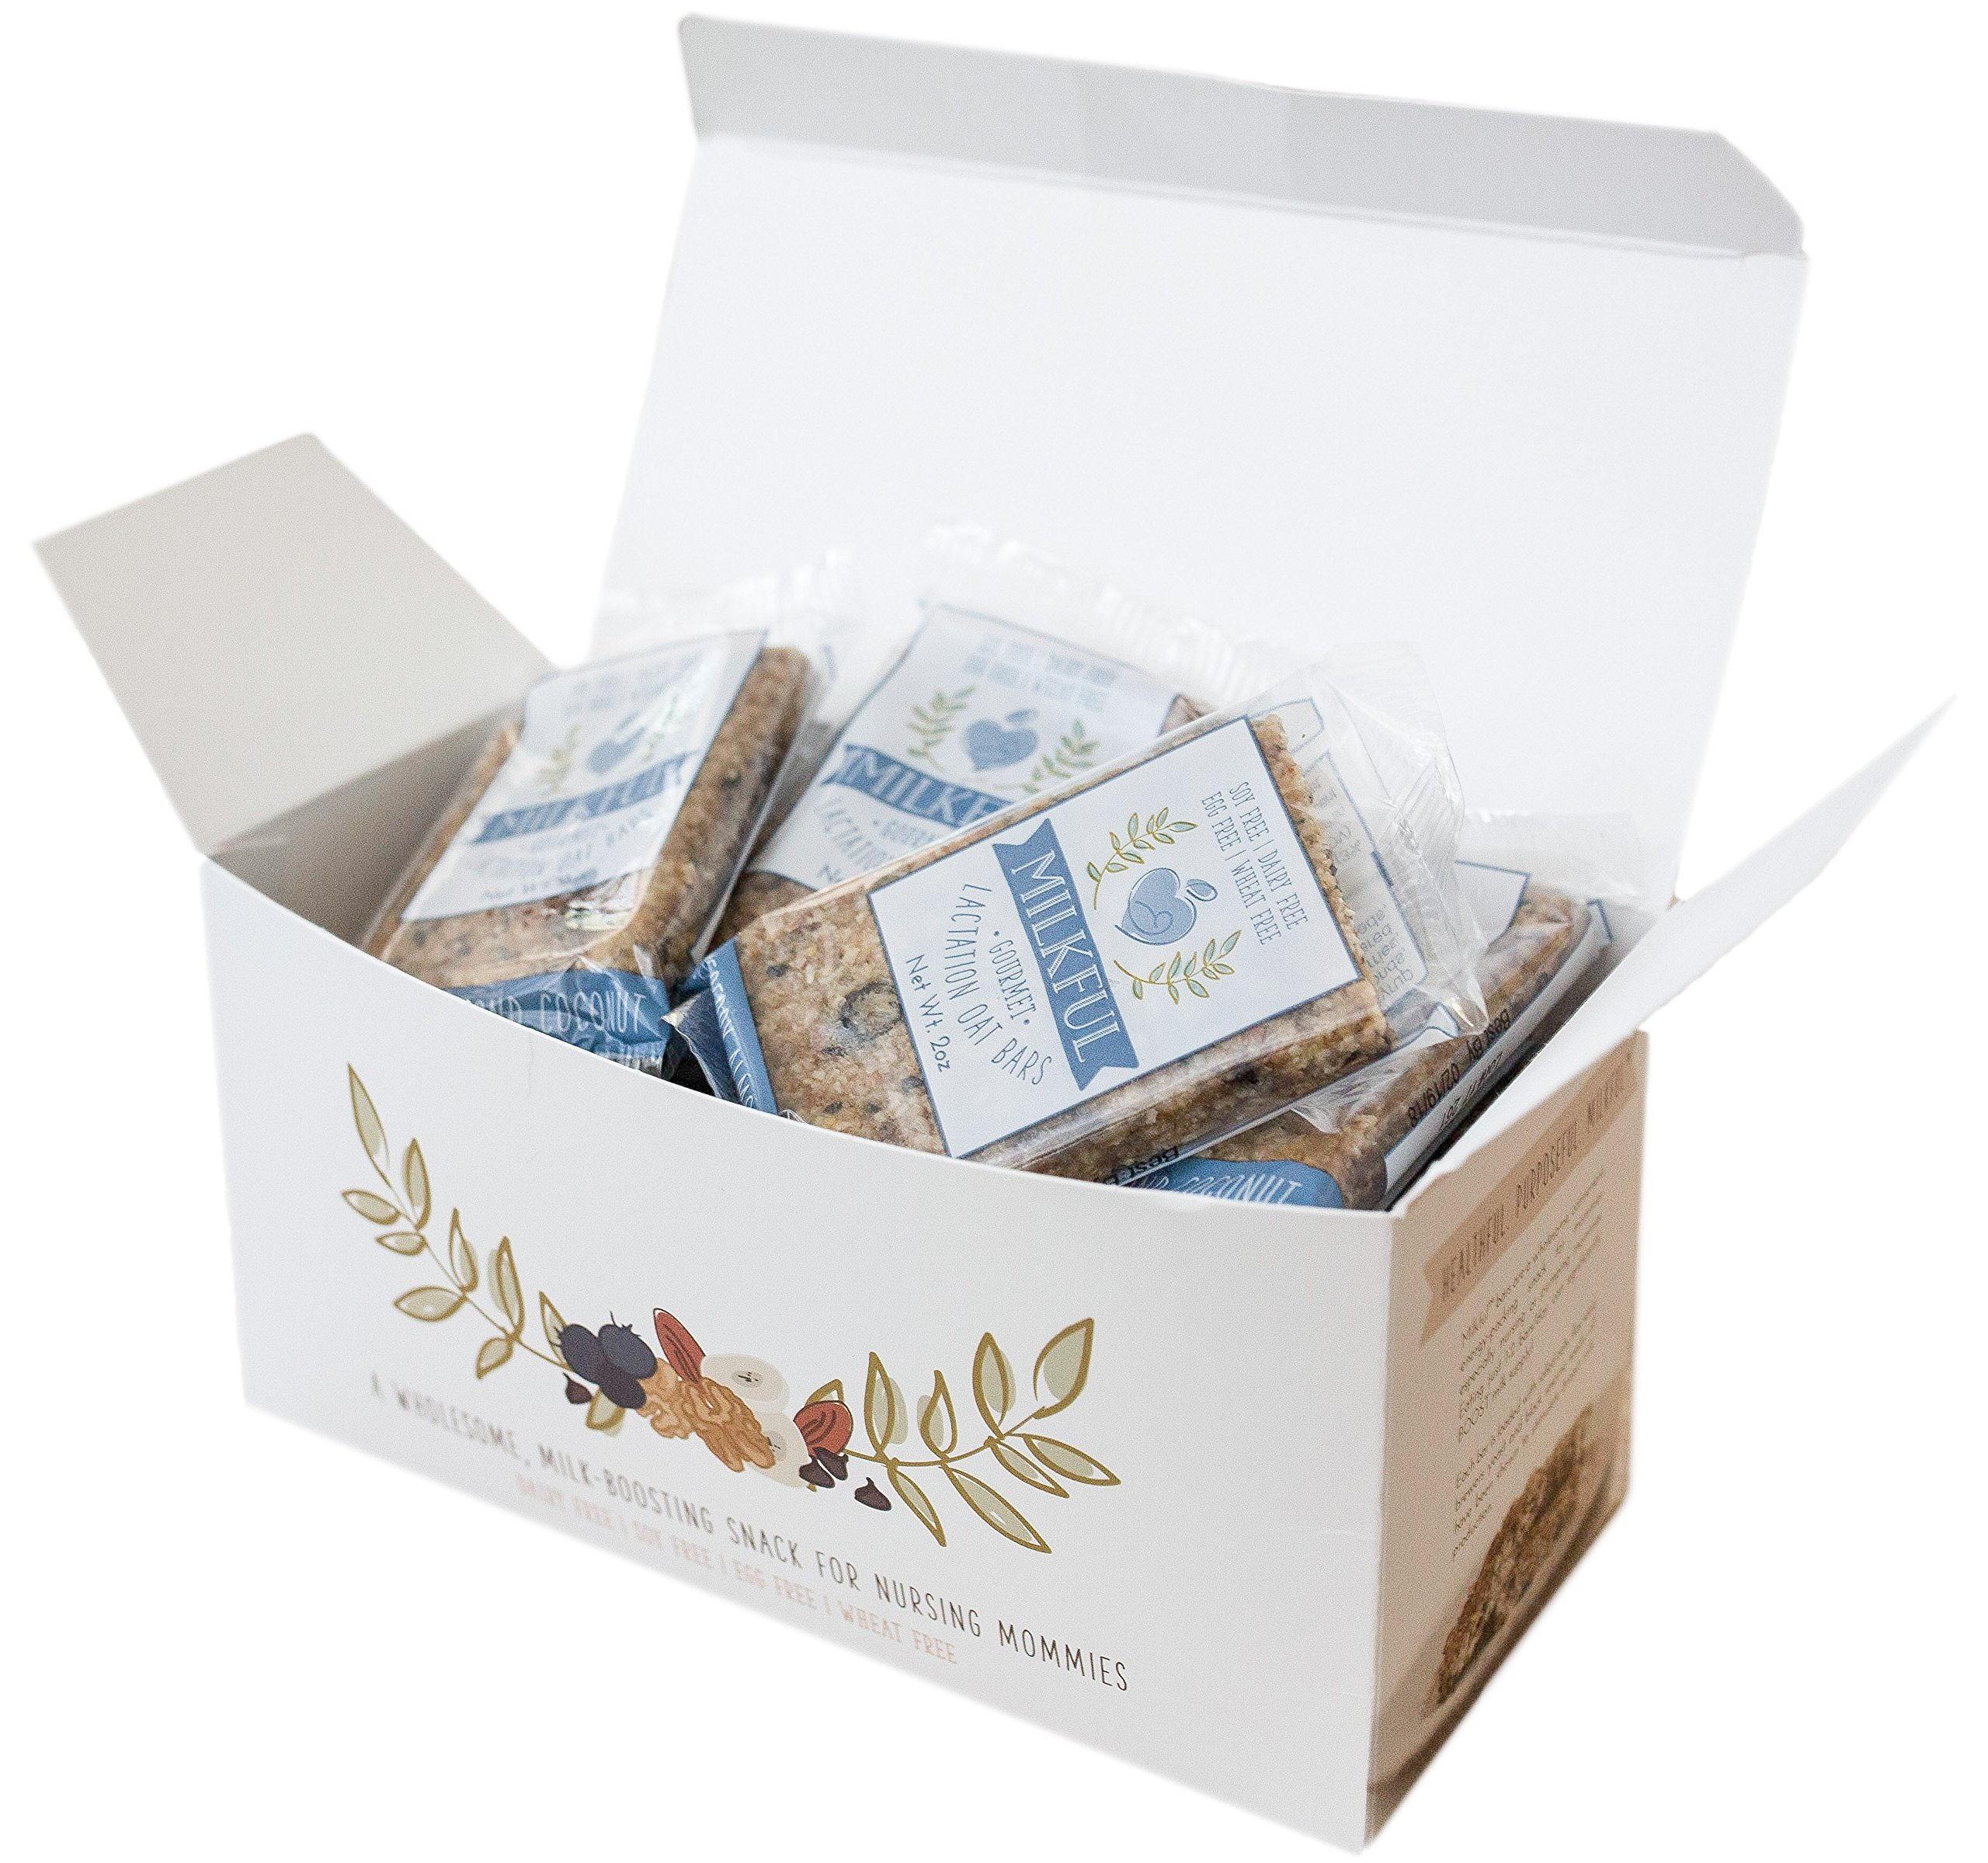 MILKFUL Lactation Bars- Wholesome Alternative to Lactation Cookies for Breastfeeding Moms. Helps Boost Breast Milk Supply.12 Bars. Dairy Free, Egg Free, Soy Free, Wheat Free (Blueberry Almond Coconut) by MILKFUL  (Image #2)